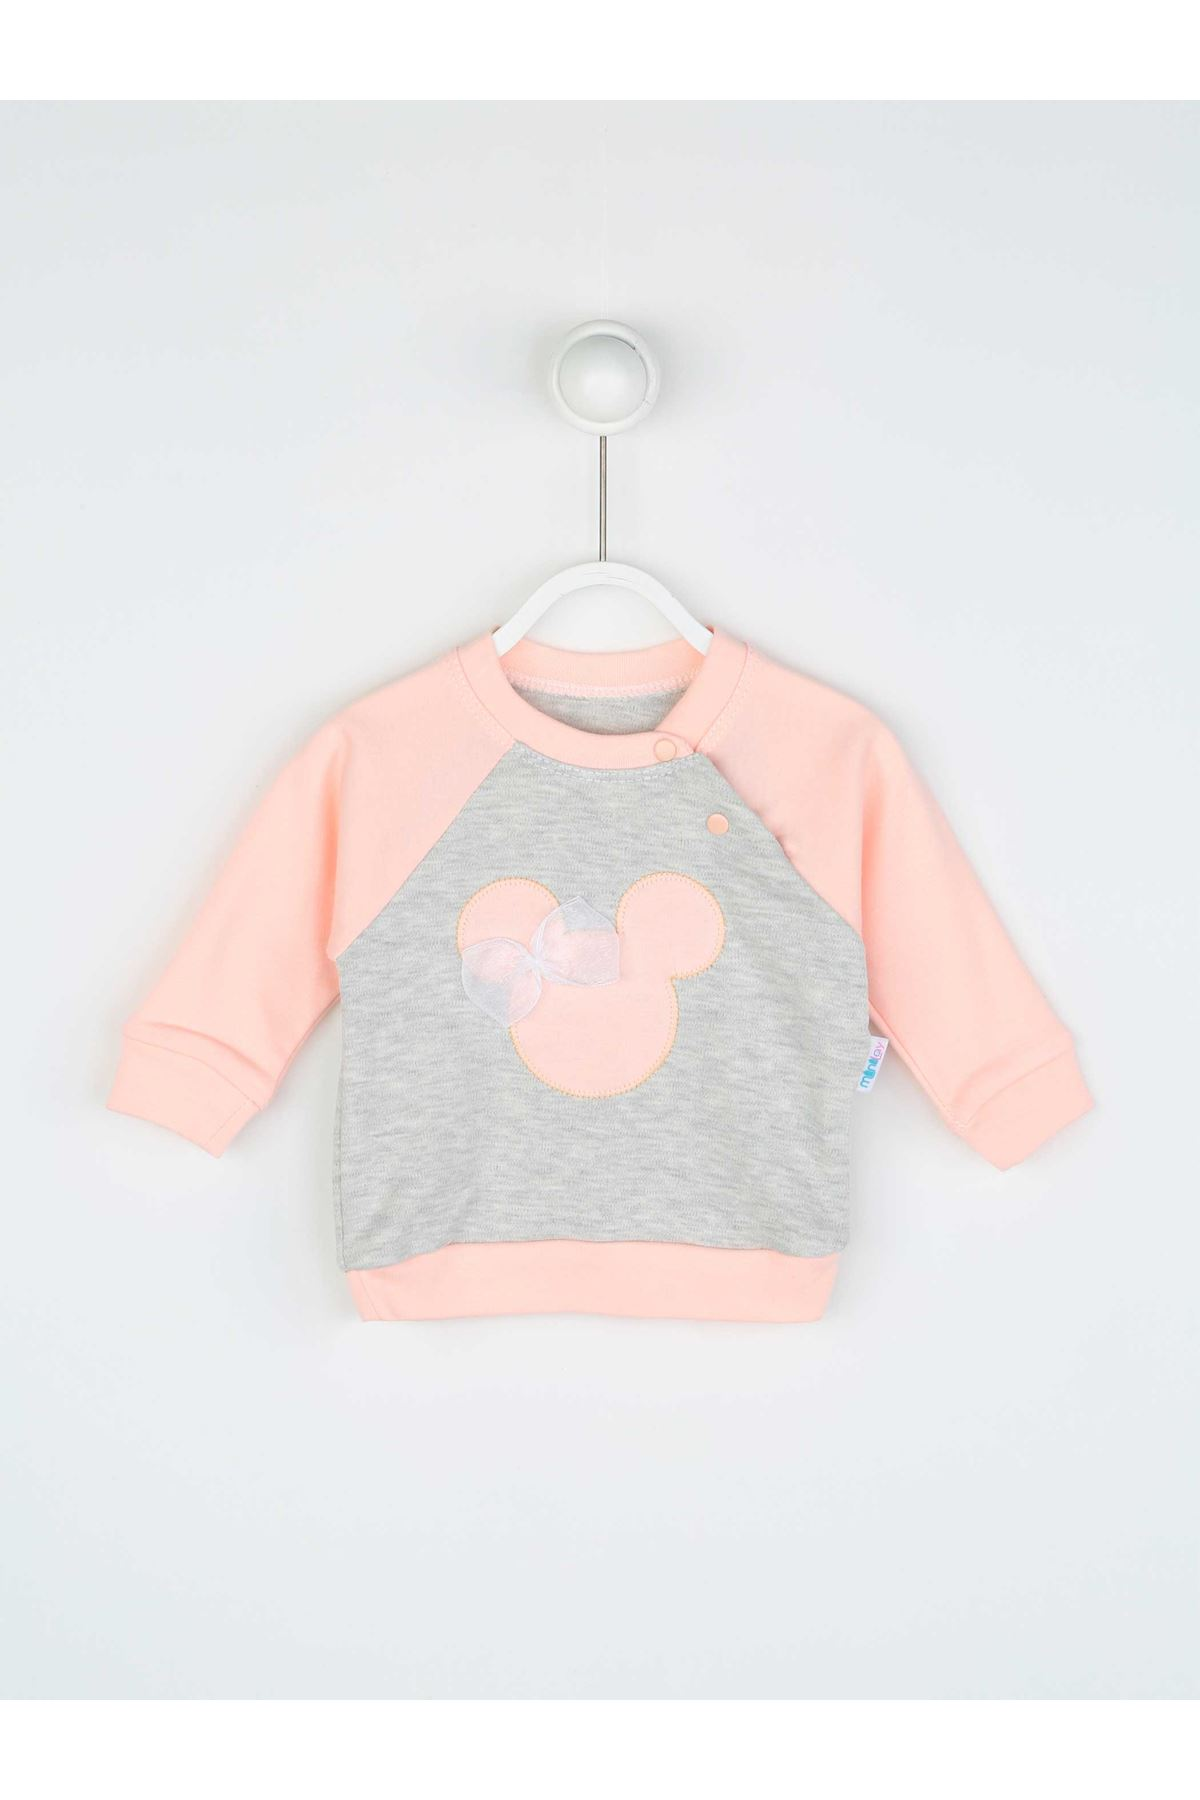 Powder Pink Baby Girl 2 Piece Set Tracksuit Bottom Babies Girls Wear Top Outfit Cotton Casual Casual Outfit Models